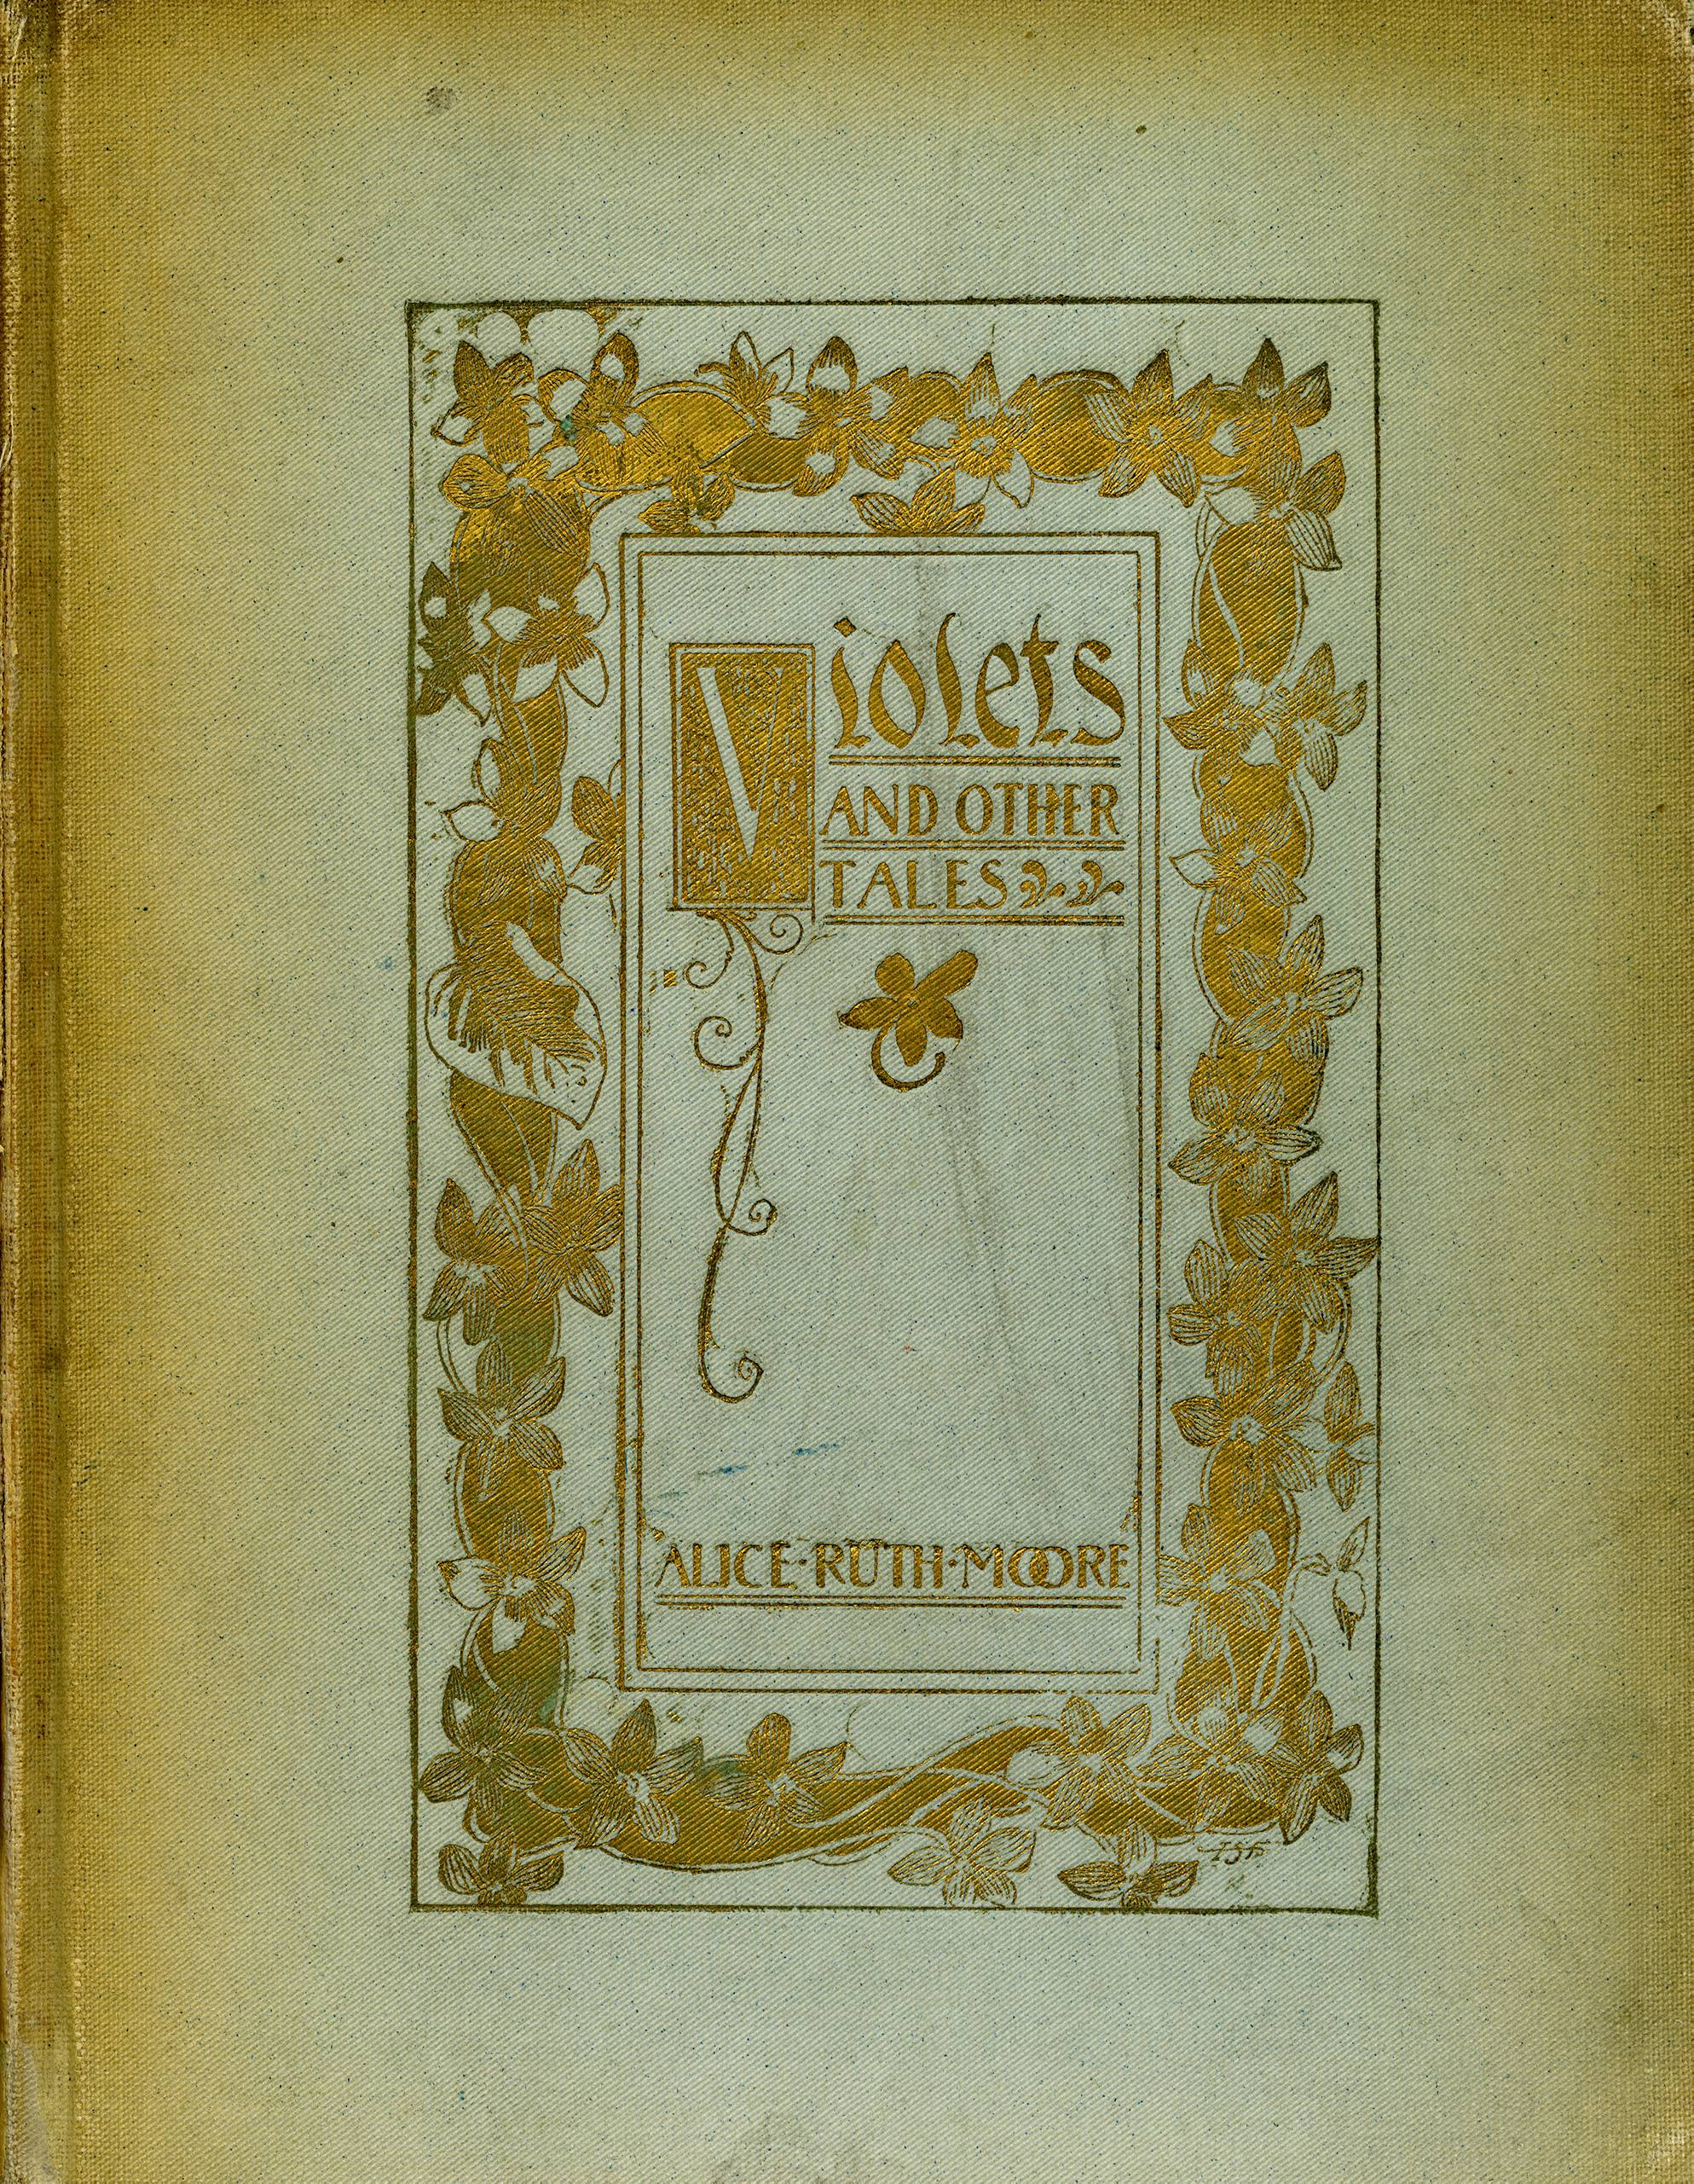 Photo of an ornate old book cover for Violets And Other Tales